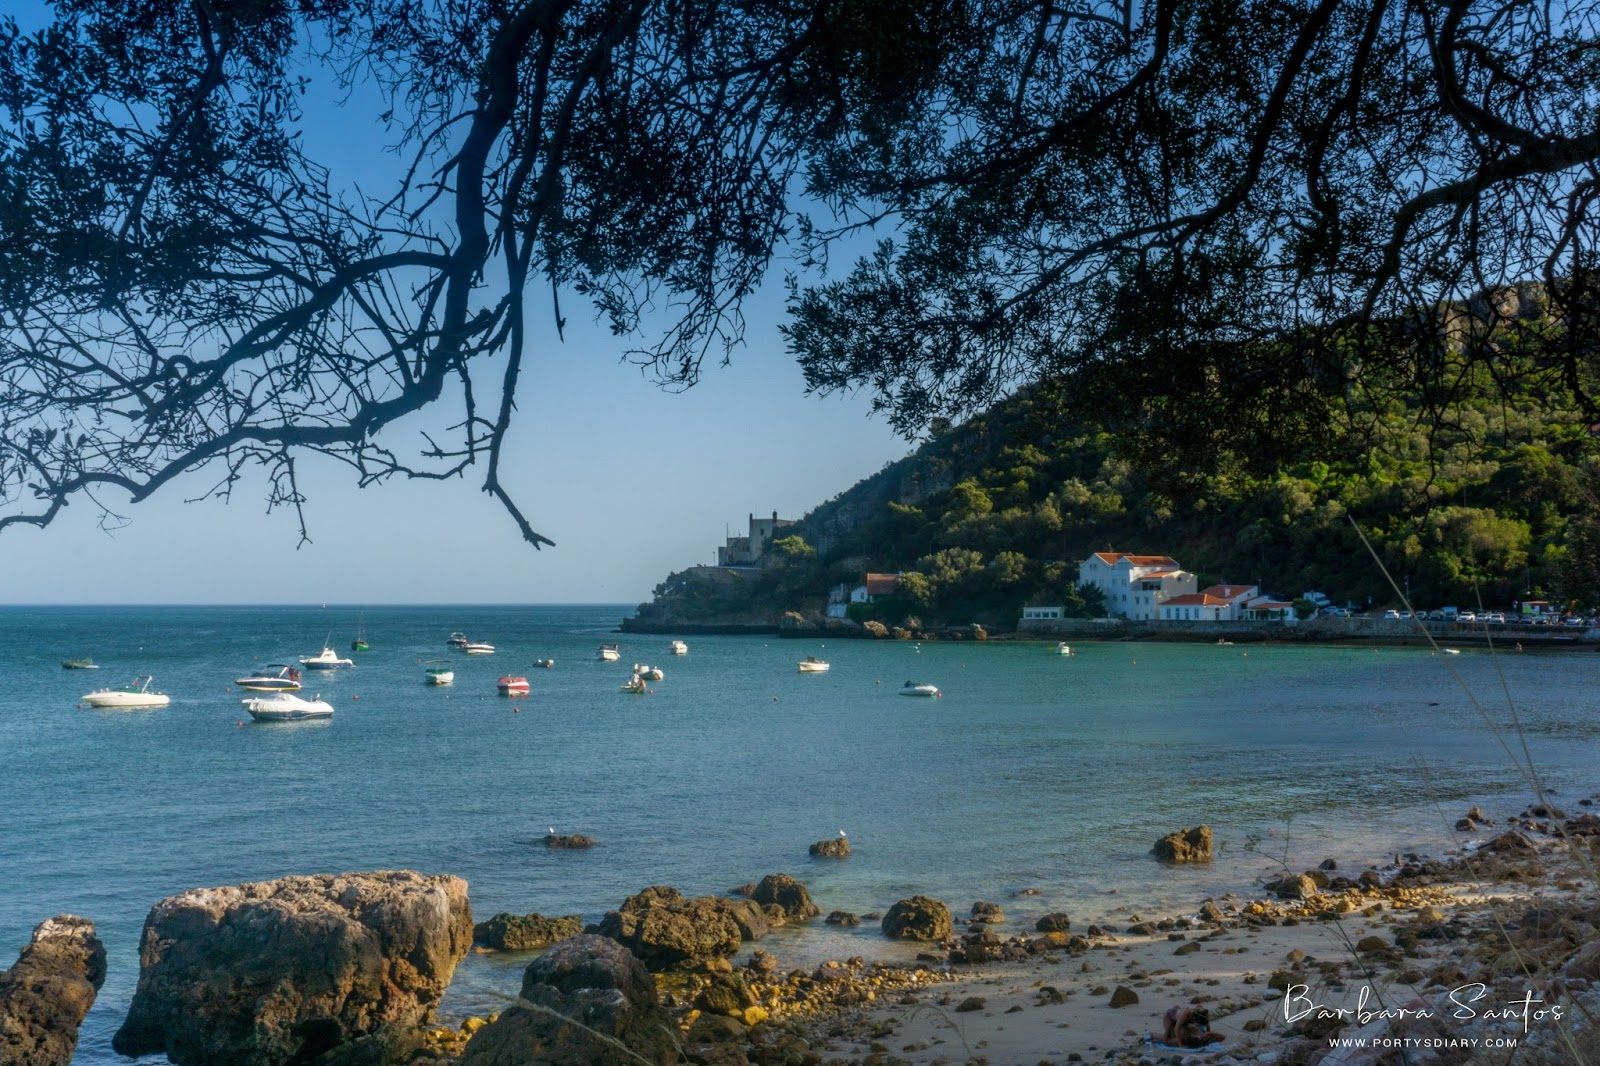 Travel | Find a beach paradise, just 1 hour away from Lisbon. Clear waters, surrounded by mountains. Come visit Arrábida. All photos with Sony a6000 by Barbara Santos for www.portysdiary.com